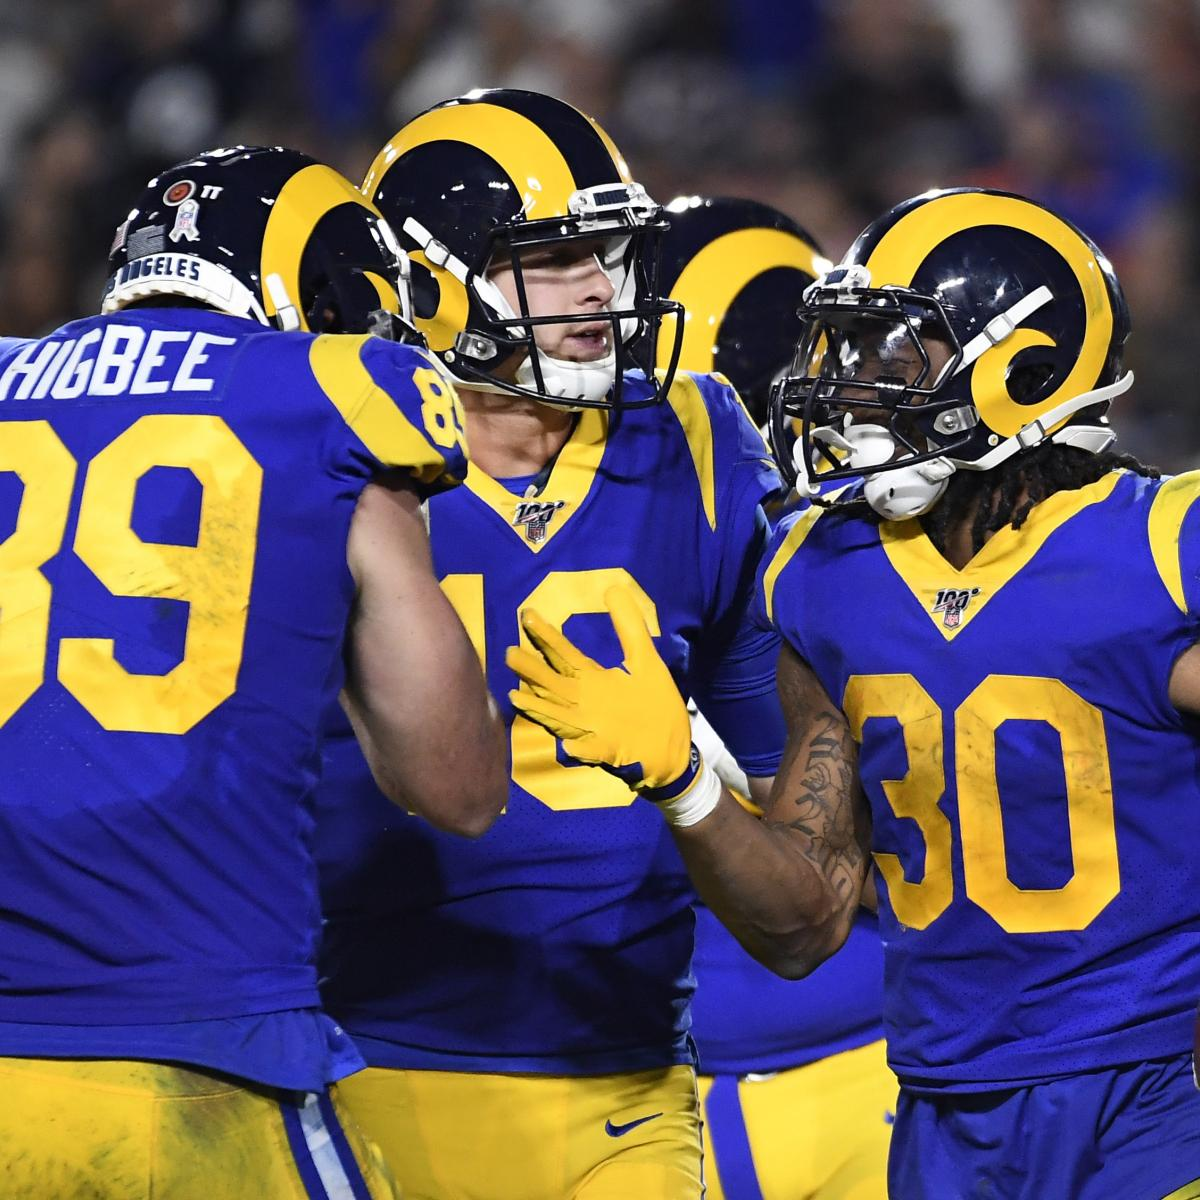 Todd Gurley, Rams Beat Bears as Jared Goff, Mitch Trubisky Both Struggle